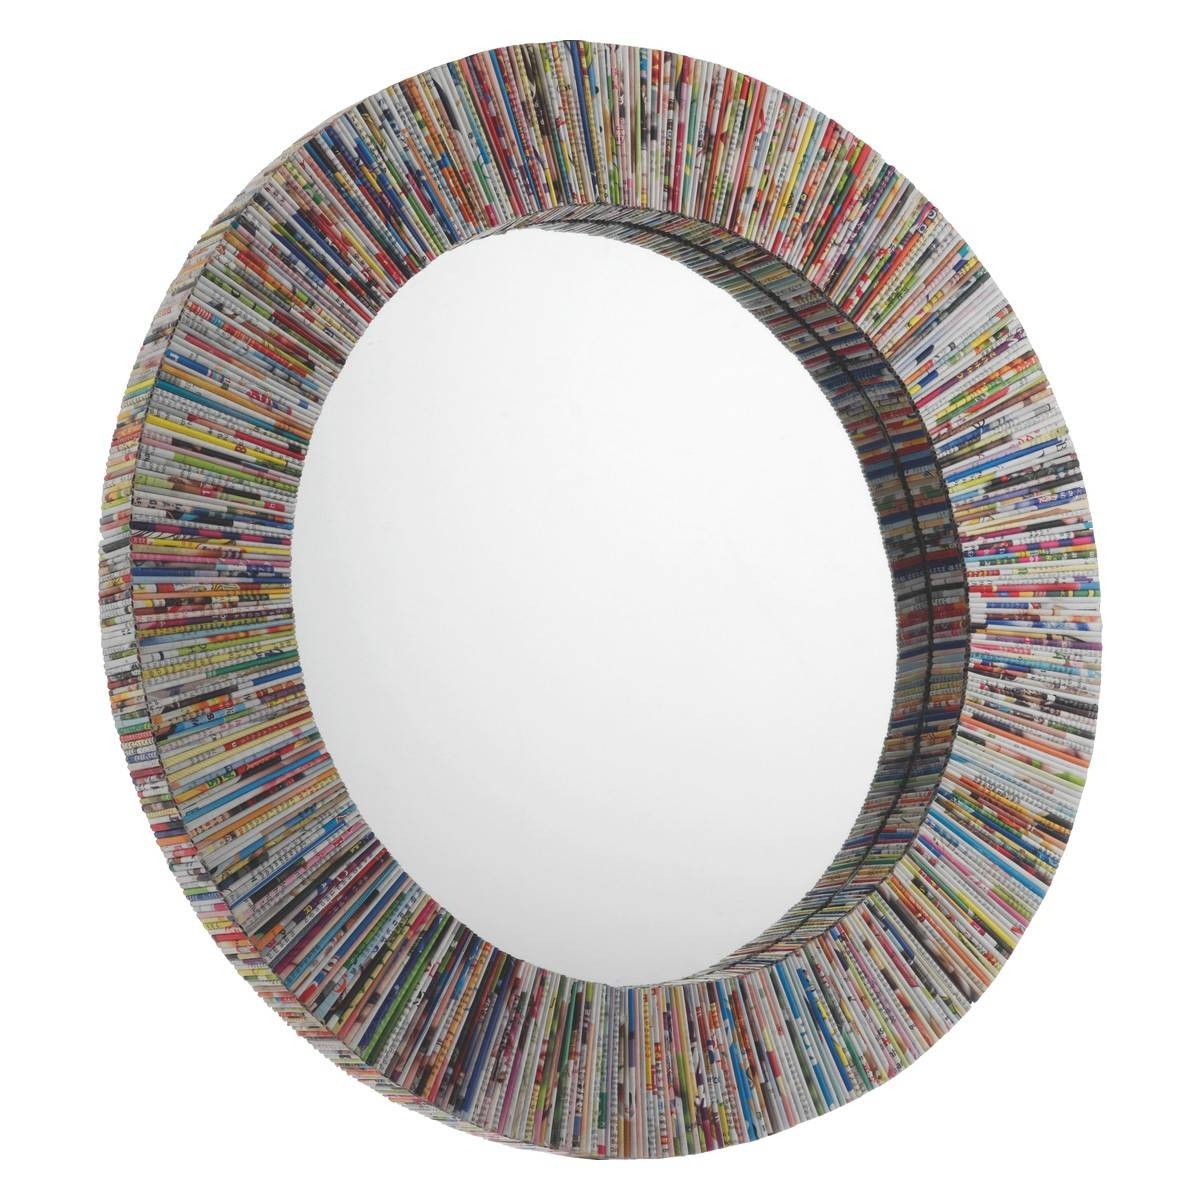 Cohen Multi-Coloured Recycled Magazine Round Wall Mirror | Buy Now regarding Circular Wall Mirrors (Image 8 of 25)